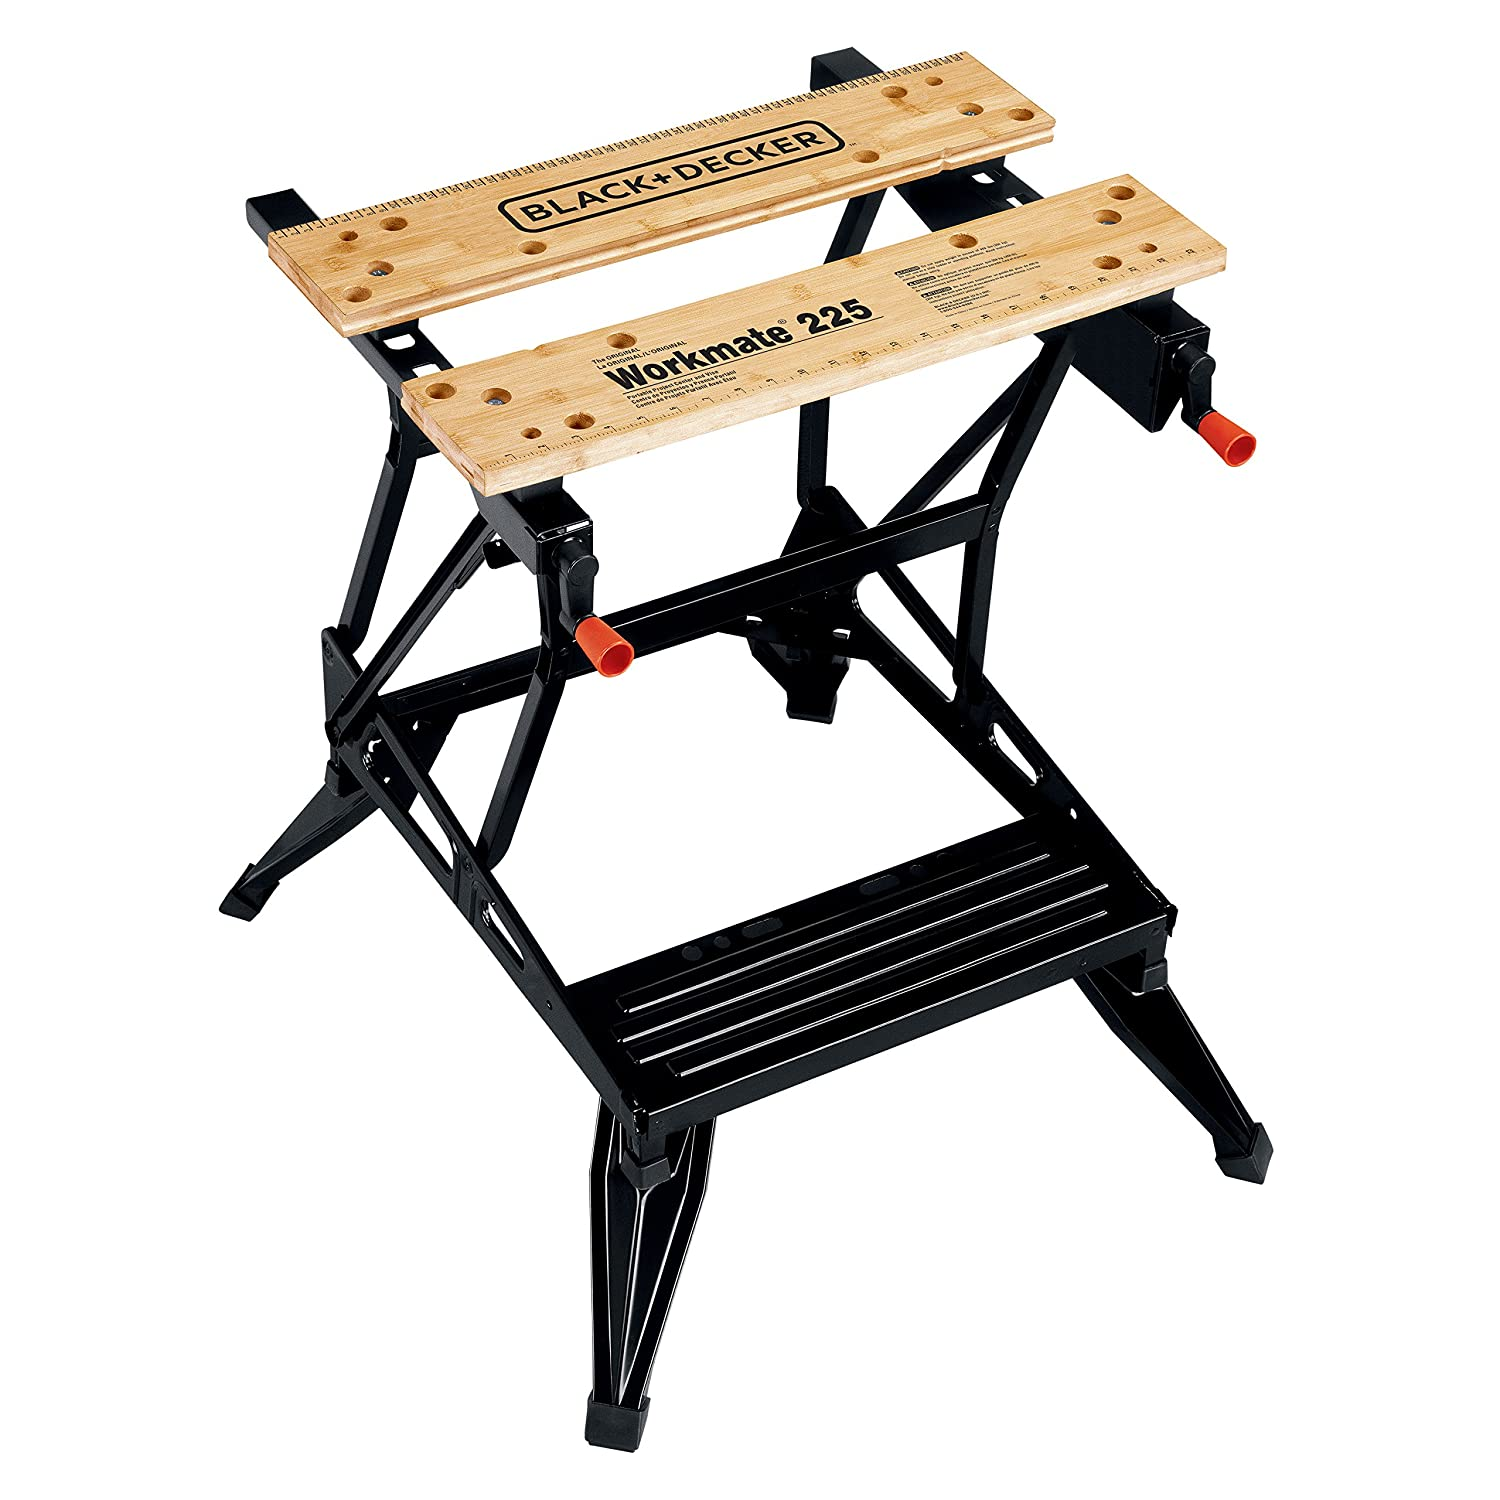 BLACK+DECKER WM225 Workmate 225 450 Pound Capacity Portable Work Bench